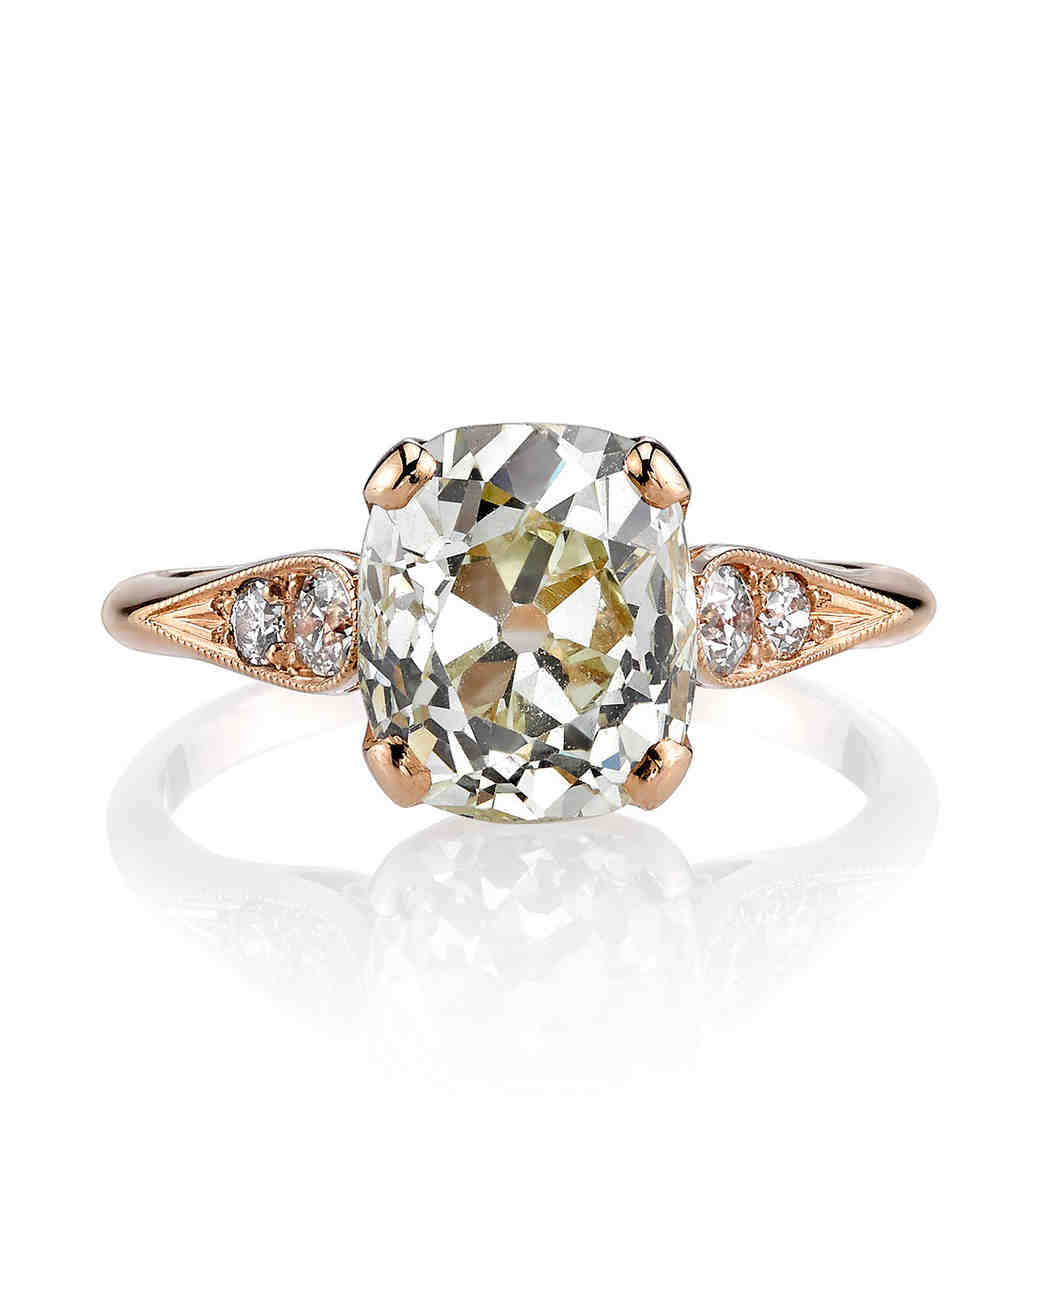 Single Stone Vintage Cushion-Cut Diamond Engagement Ring in Rose Gold